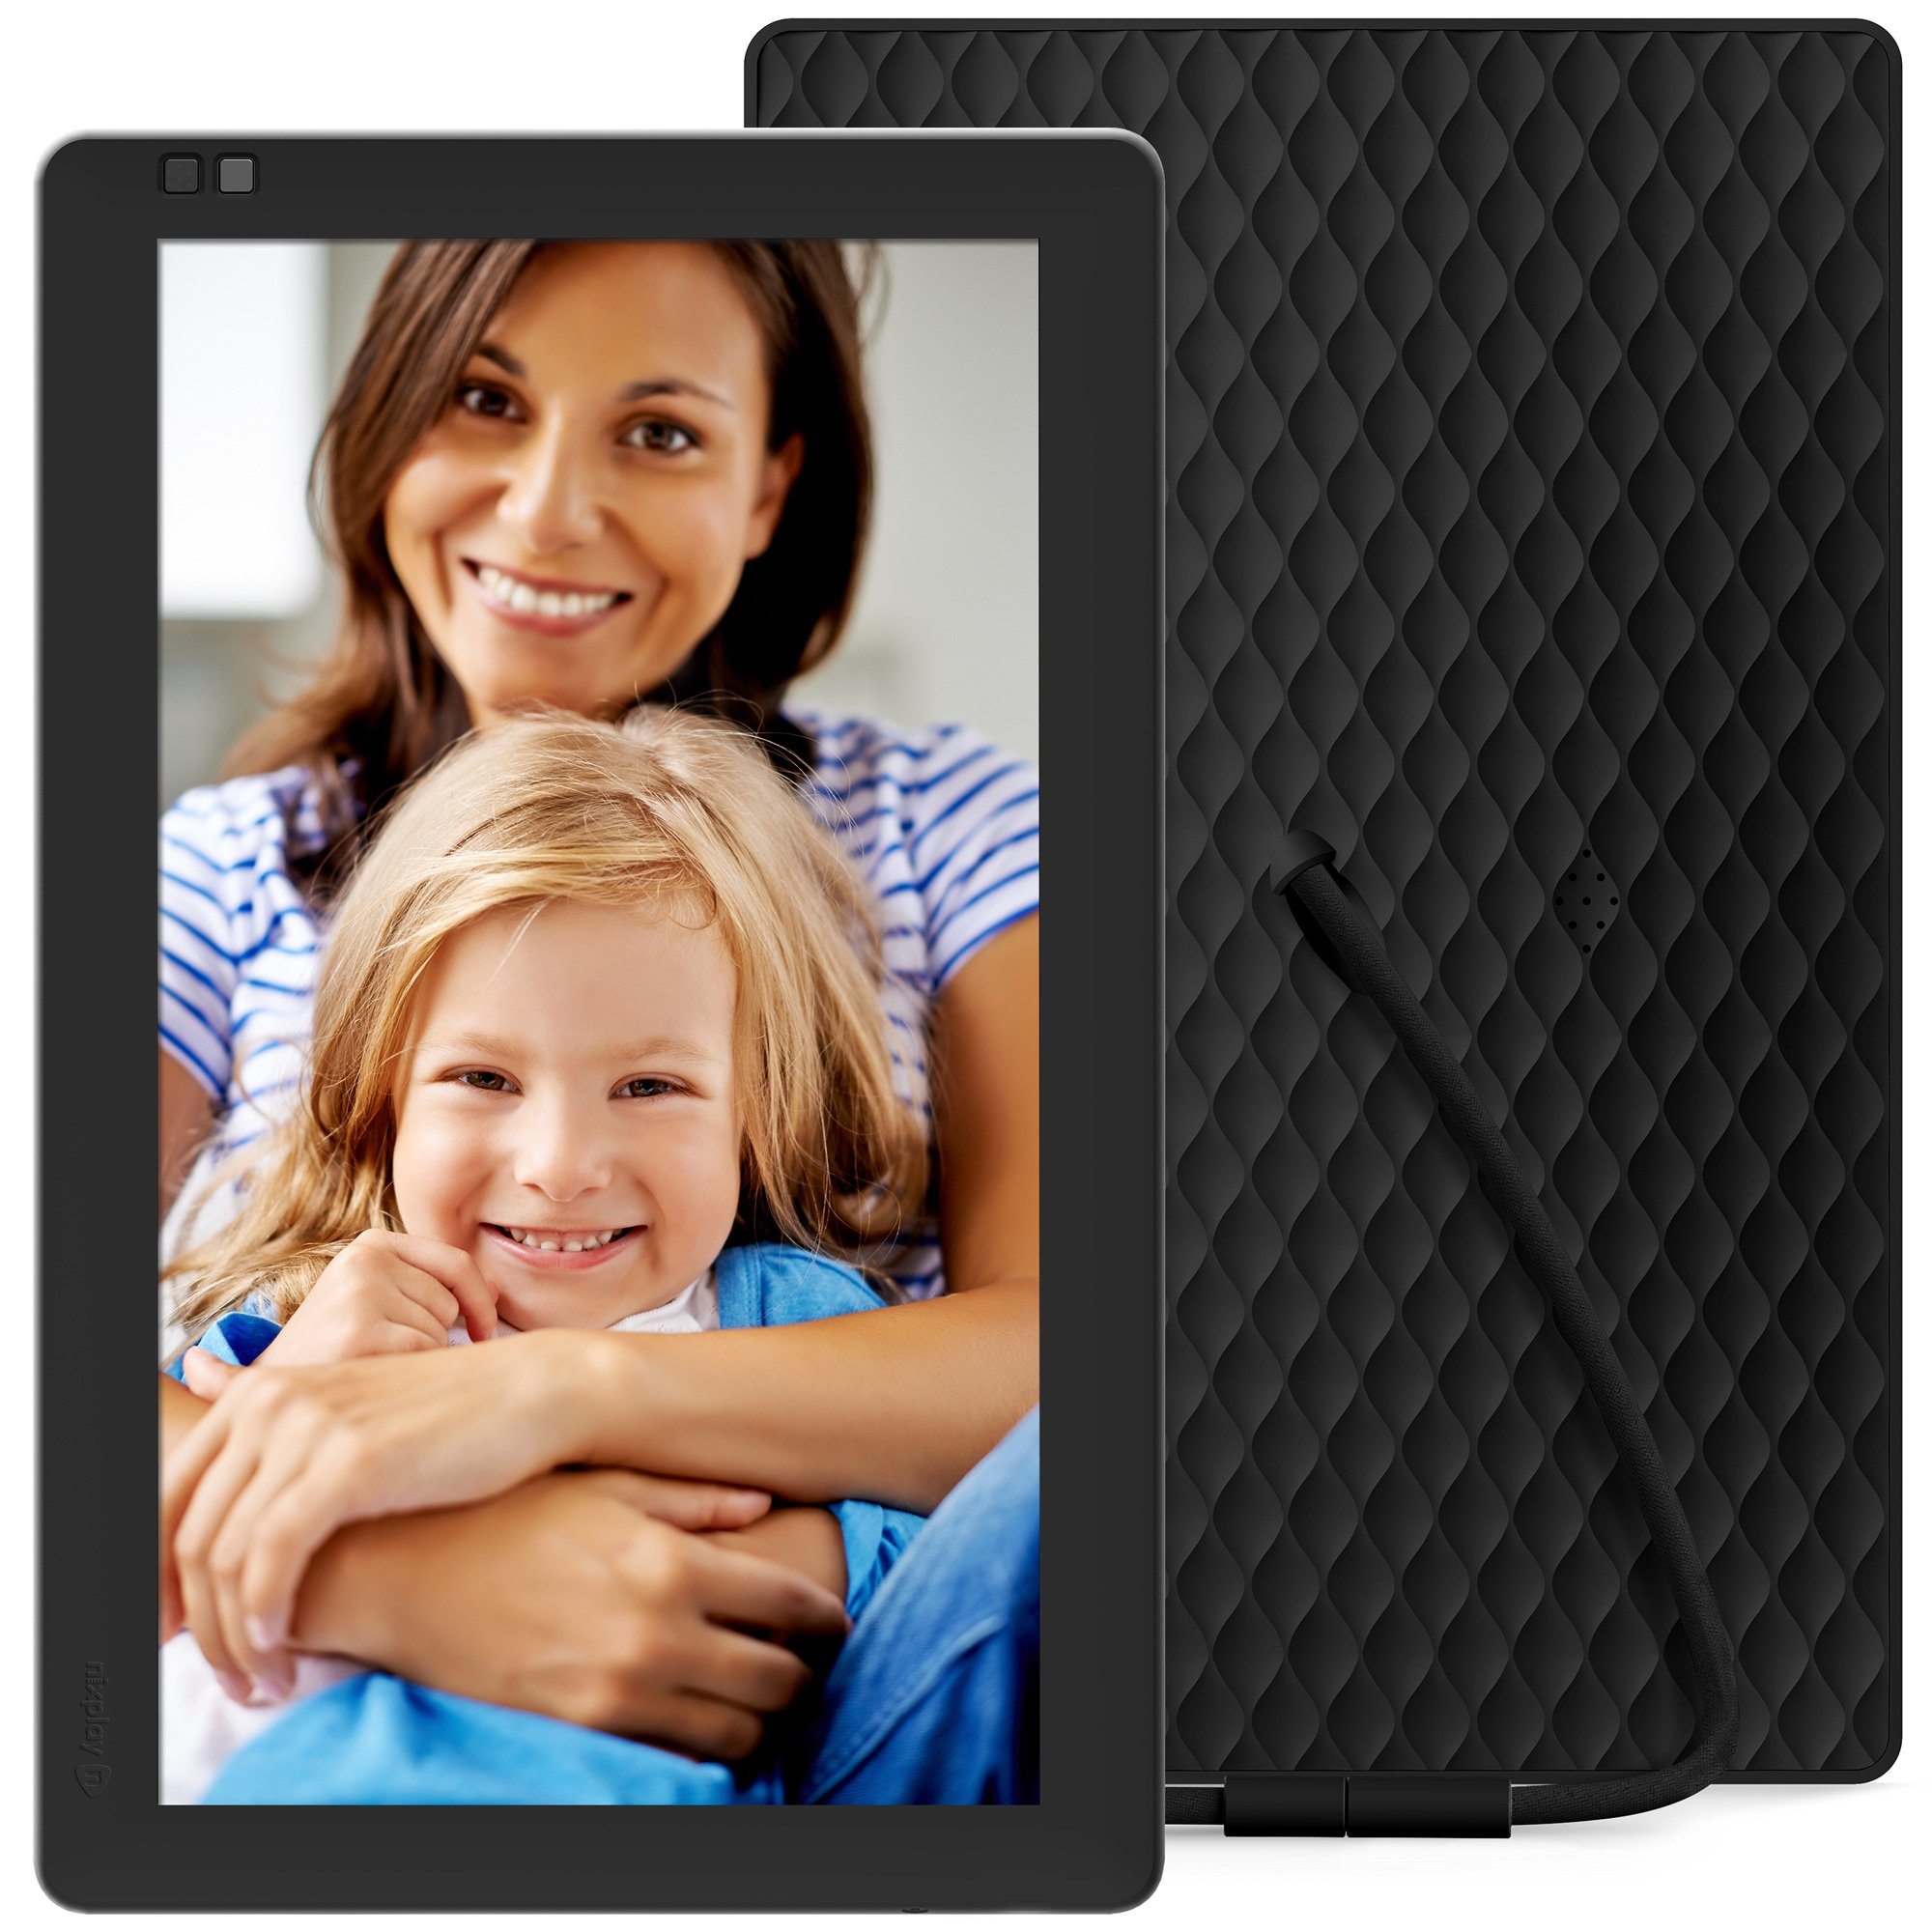 Nixplay Seed 10.1 Inch Widescreen Digital Wi-Fi Photo Frame W10B Black - Digital Picture Frame with IPS Display and 10GB Online Storage, Display and Share Photos with Friends via Nixplay Mobile App by nixplay